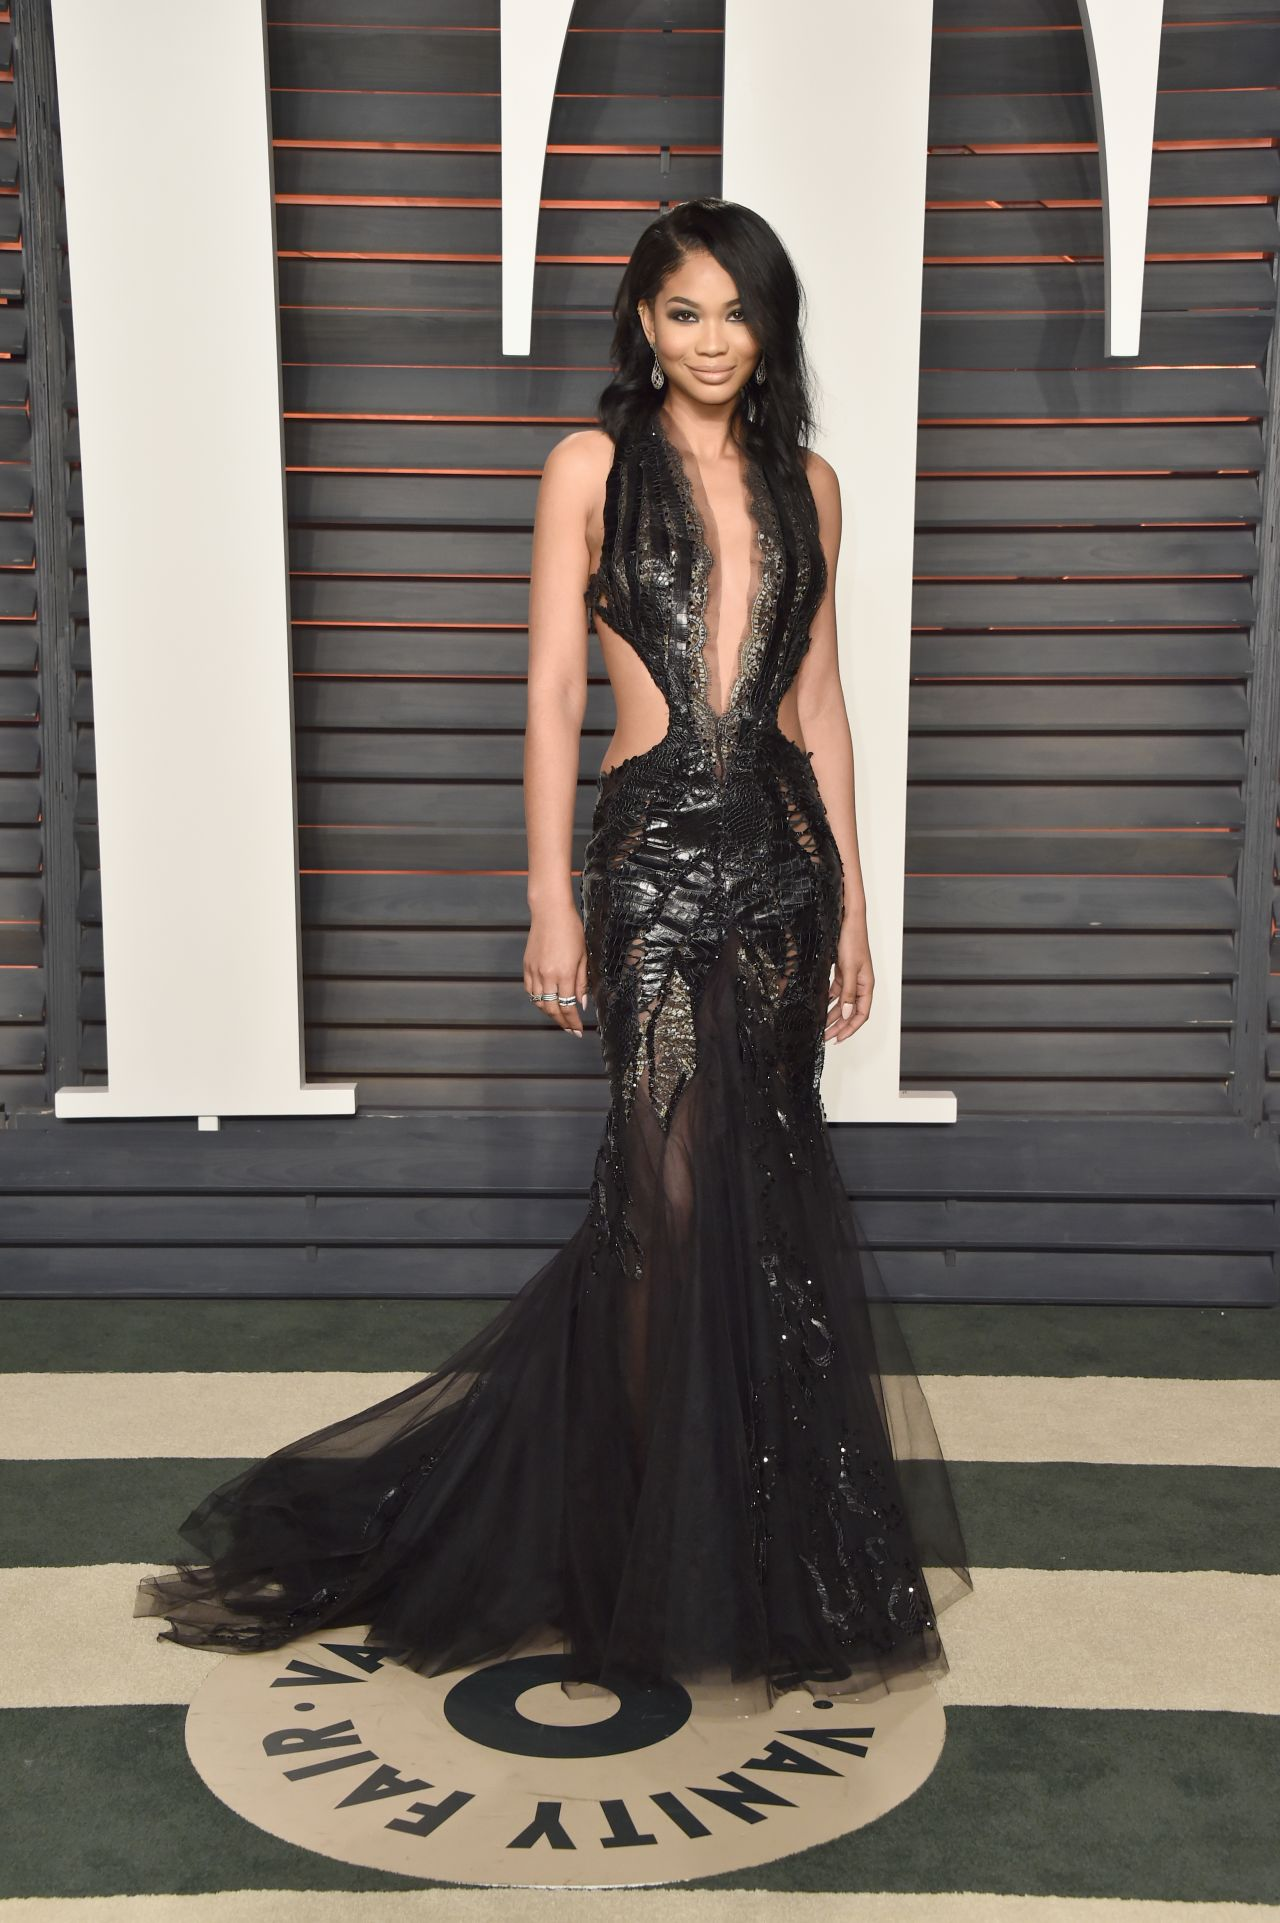 chanel-iman-2016-vanity-fair-oscar-party-in-beverly-hills-ca-4